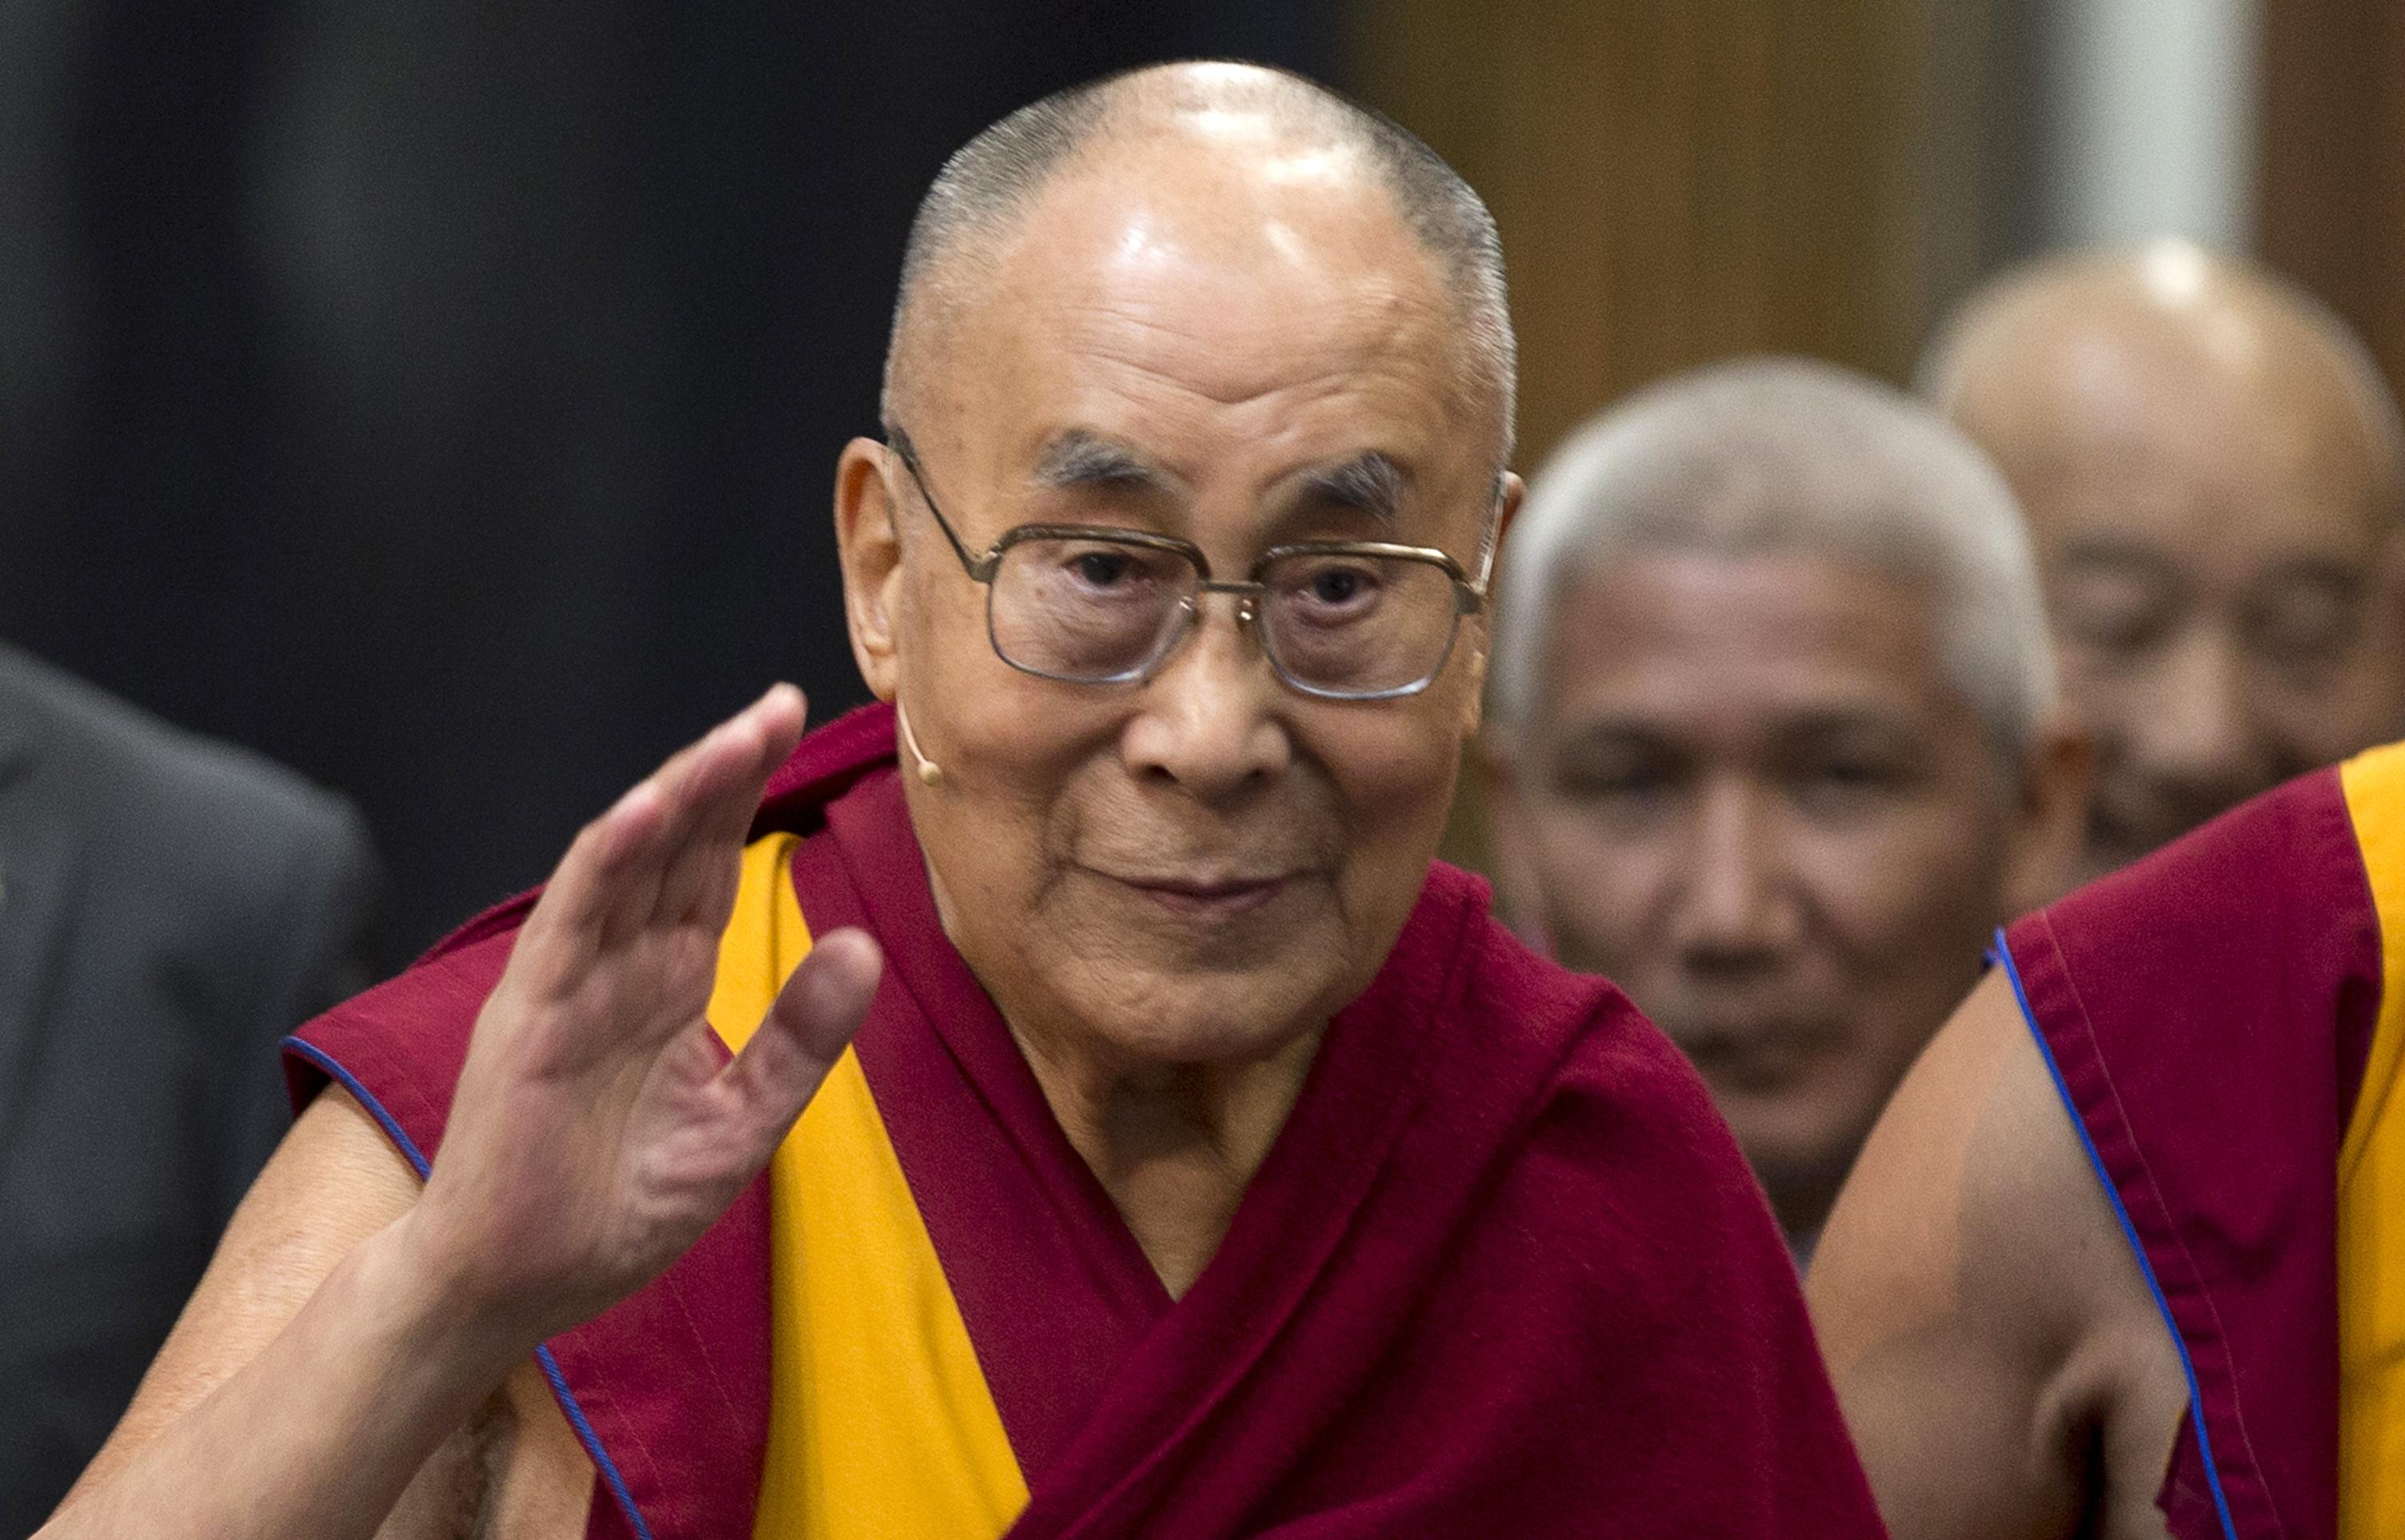 The Dalai Lama Criticizes Donald Trump For Having Lack Of Moral Principle Washington Times